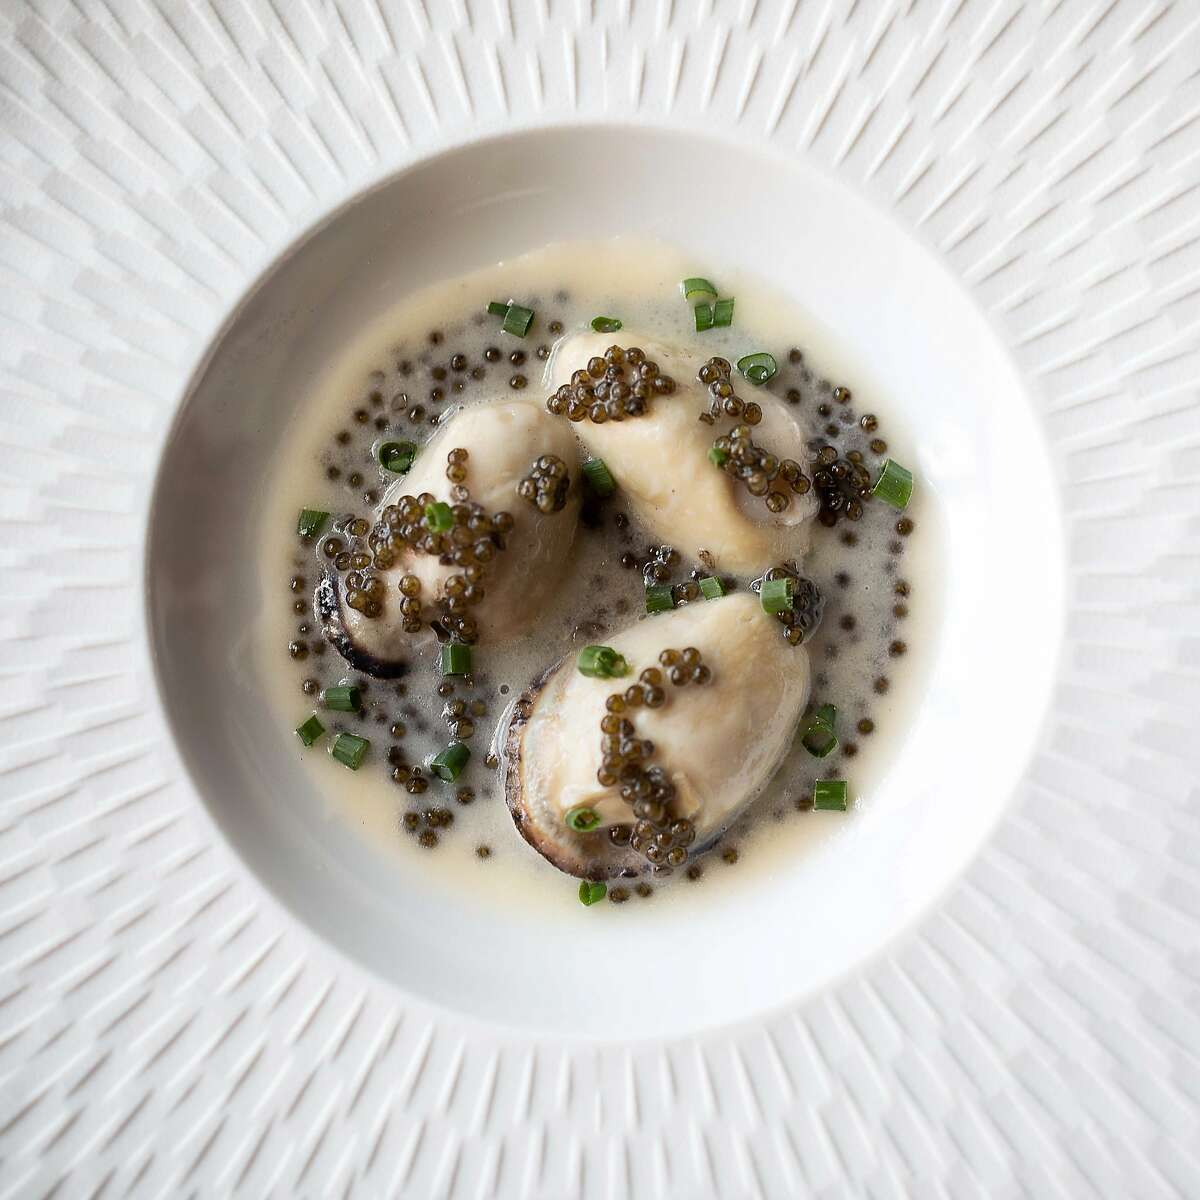 Butter-poached oysters with caviar and Champagne from San Francisco's Acquerello.